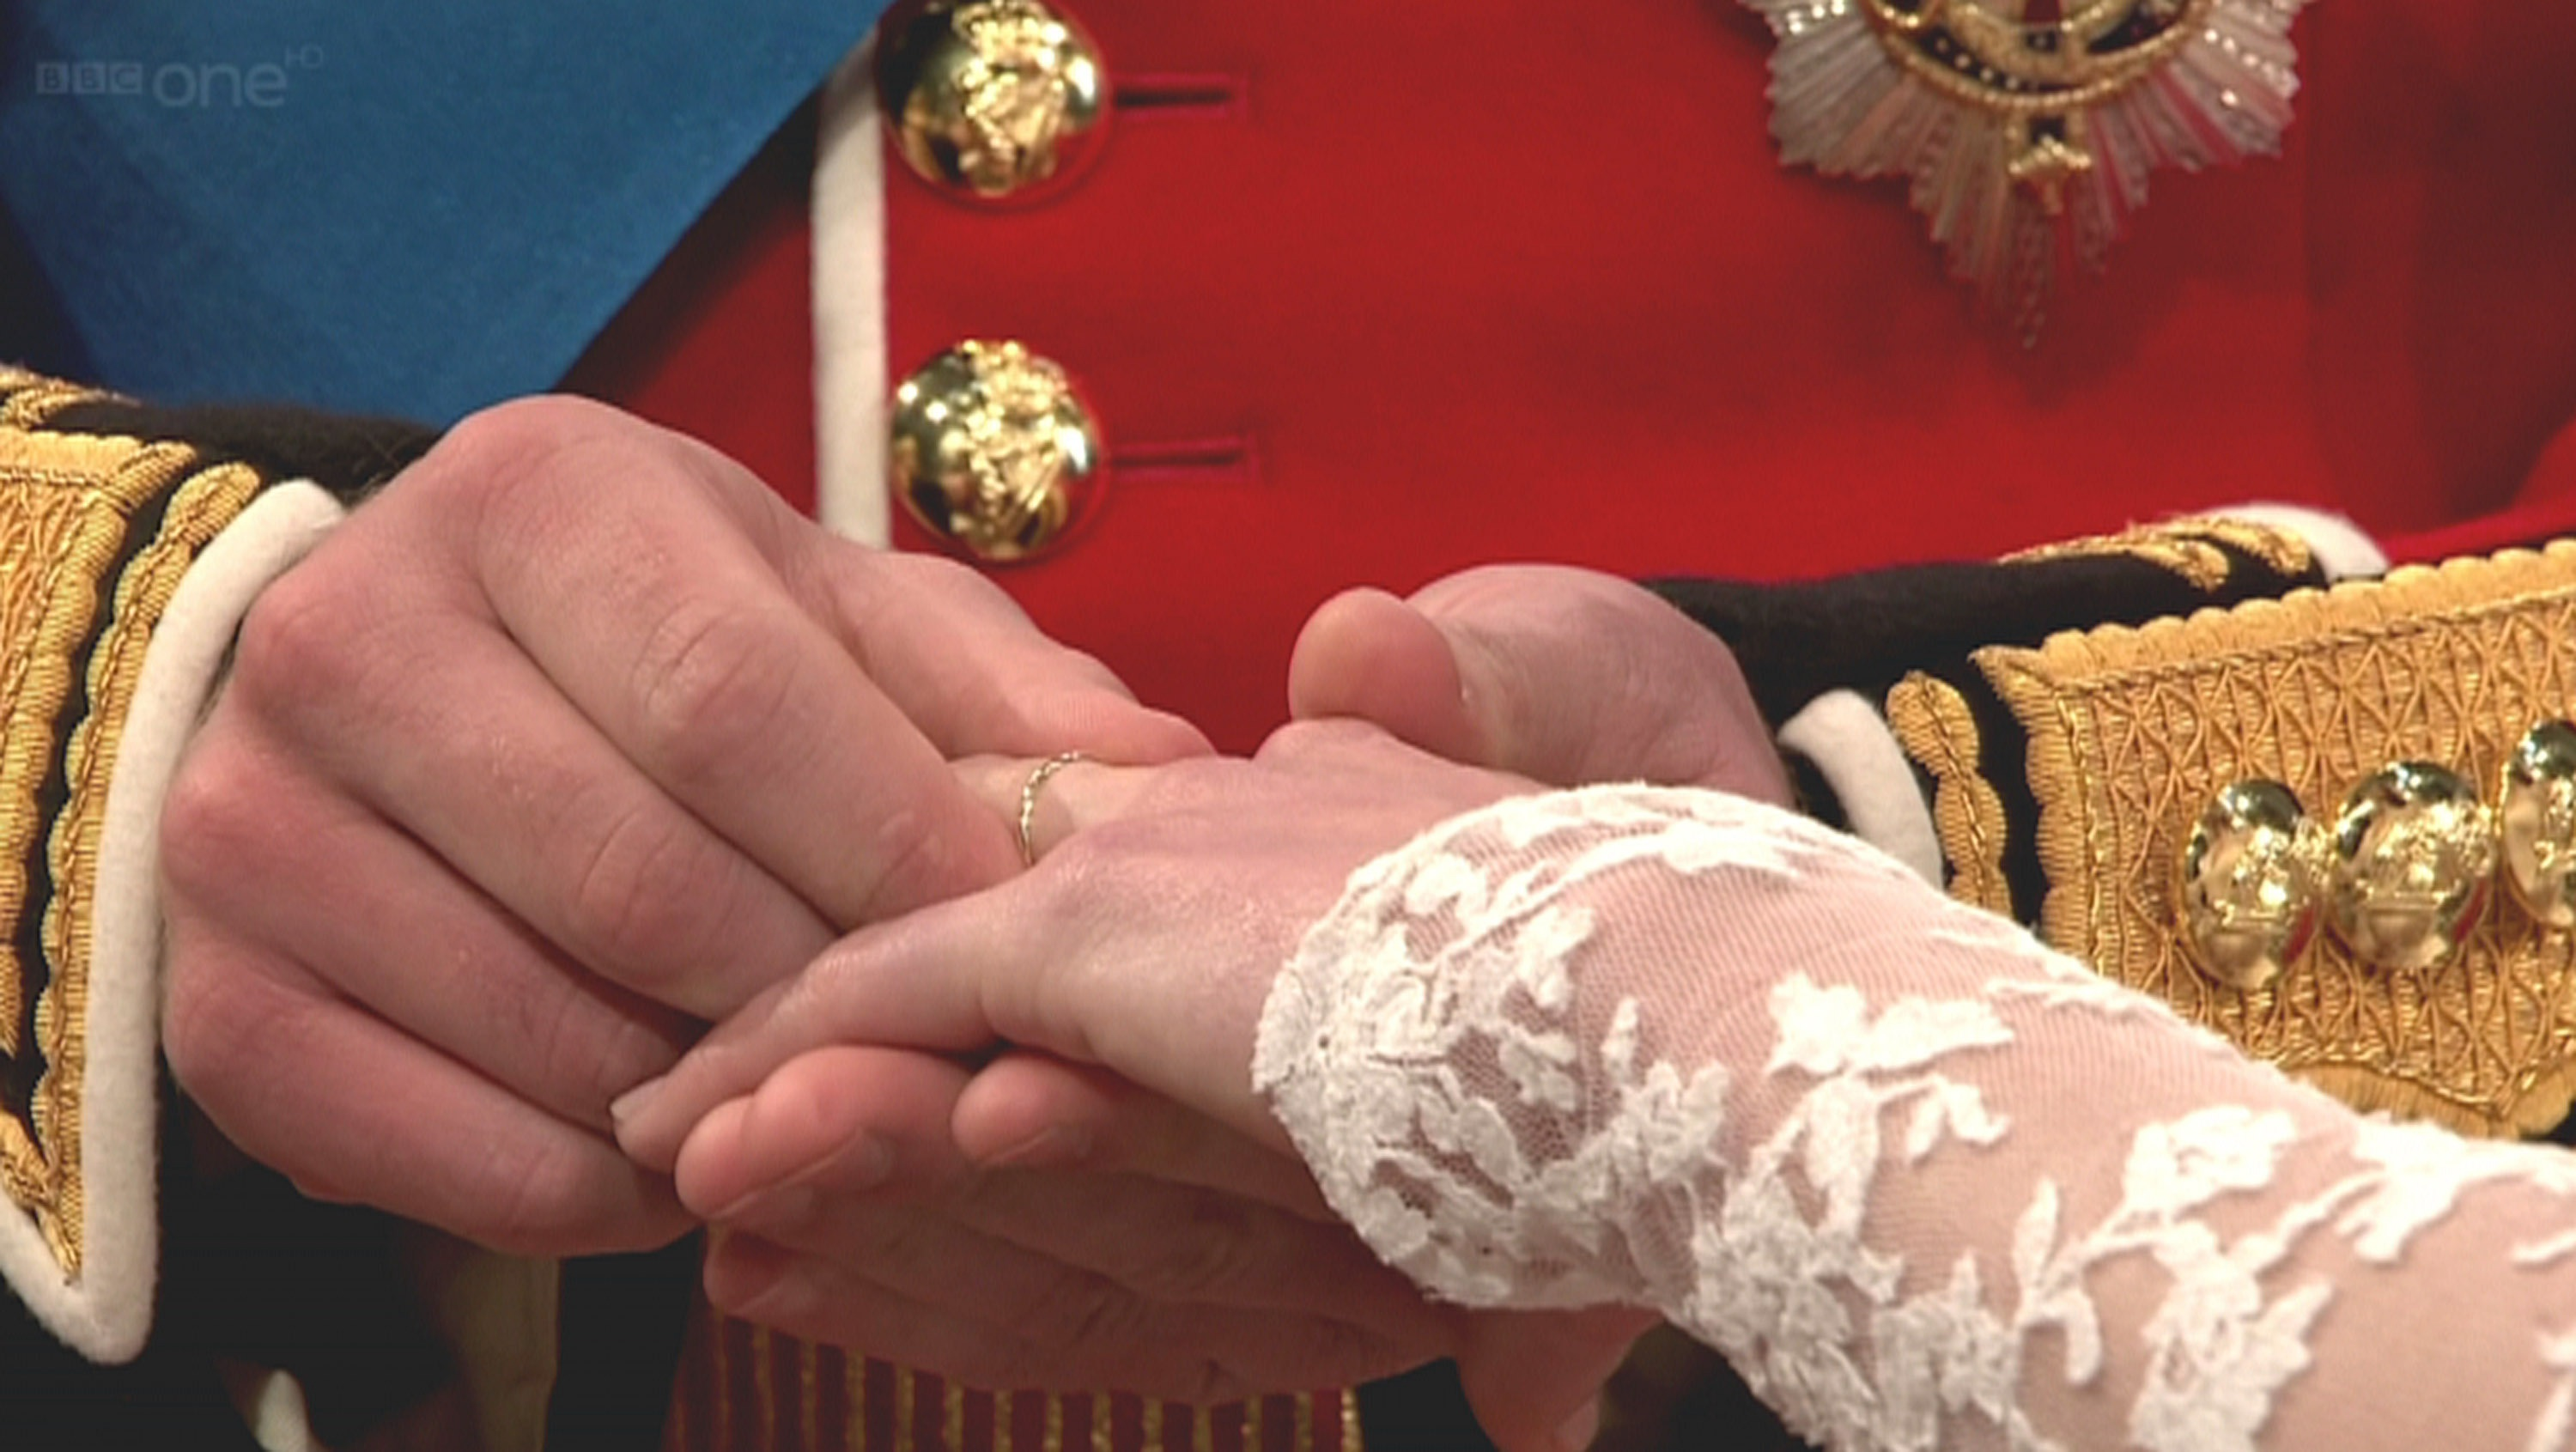 Prince William puts wedding ring on Kate Middleton's well manicured finger